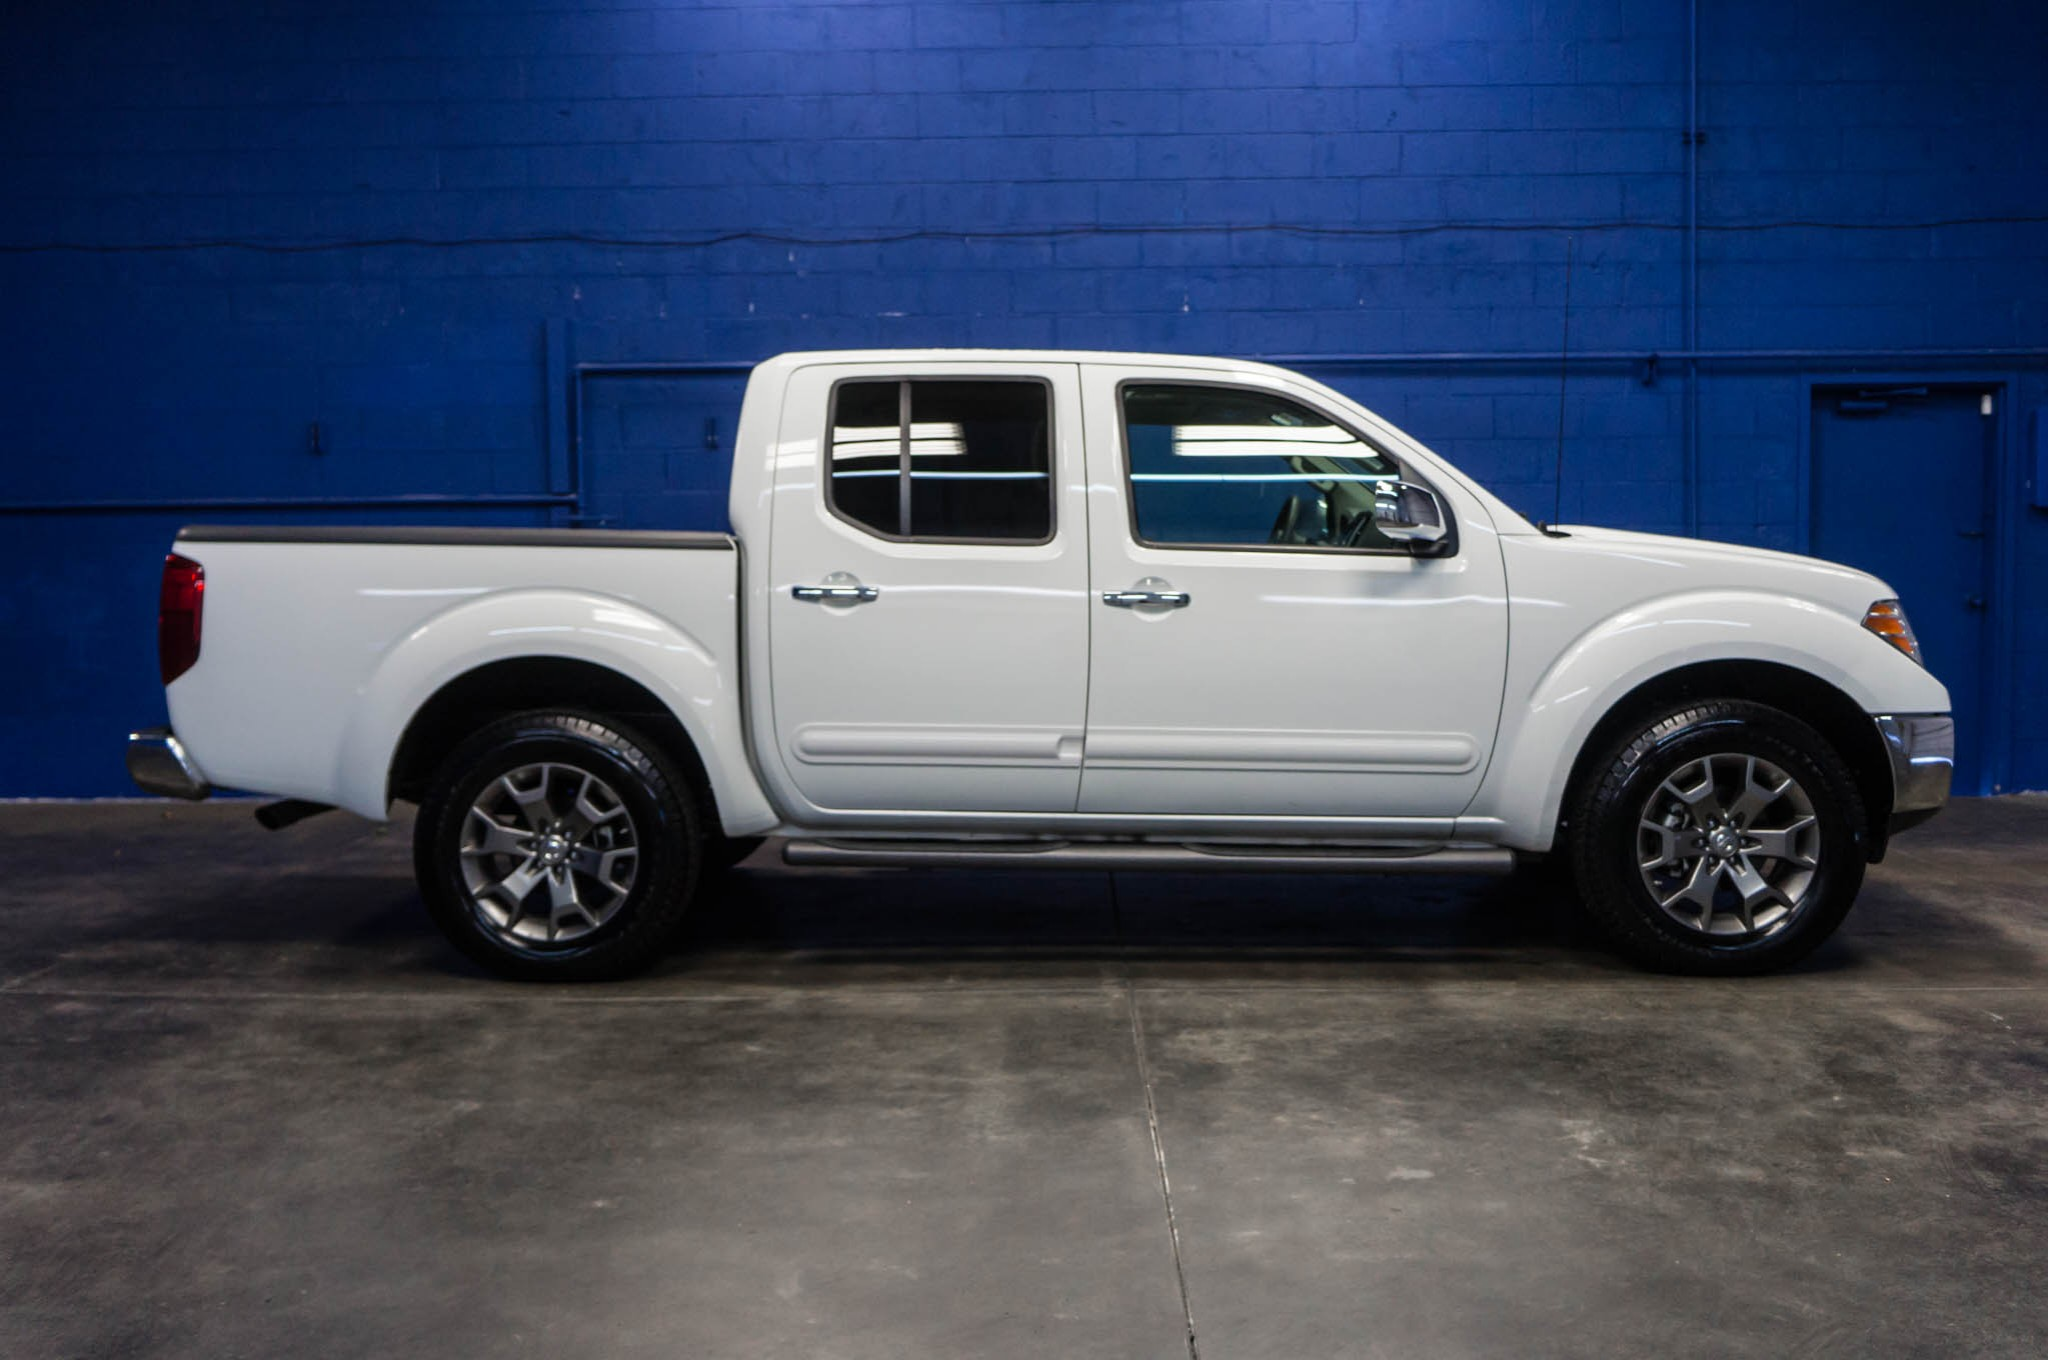 Used 2015 Nissan Frontier SL 4x4 Truck For Sale